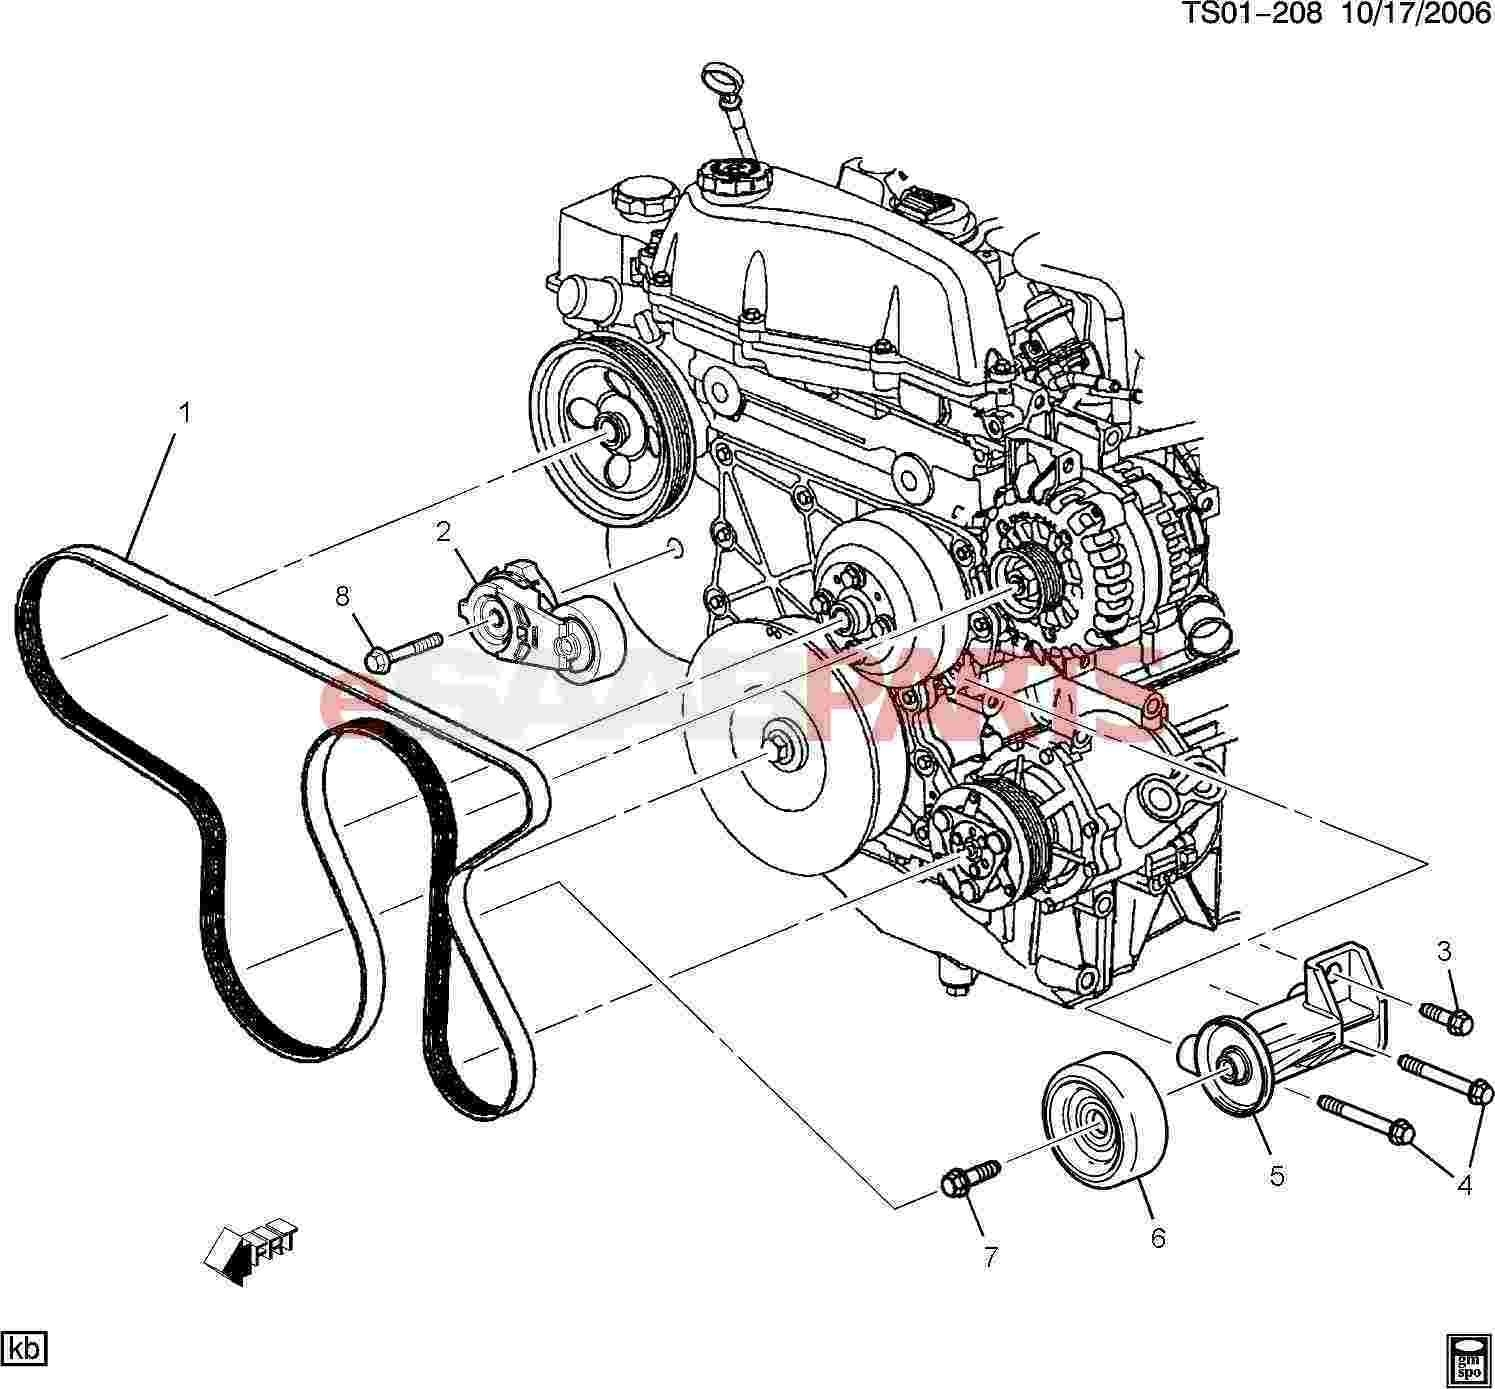 Toyota Corolla 2000 Engine Diagram Avensis Complete Wiring How To Replace Change Cable Of Related Post